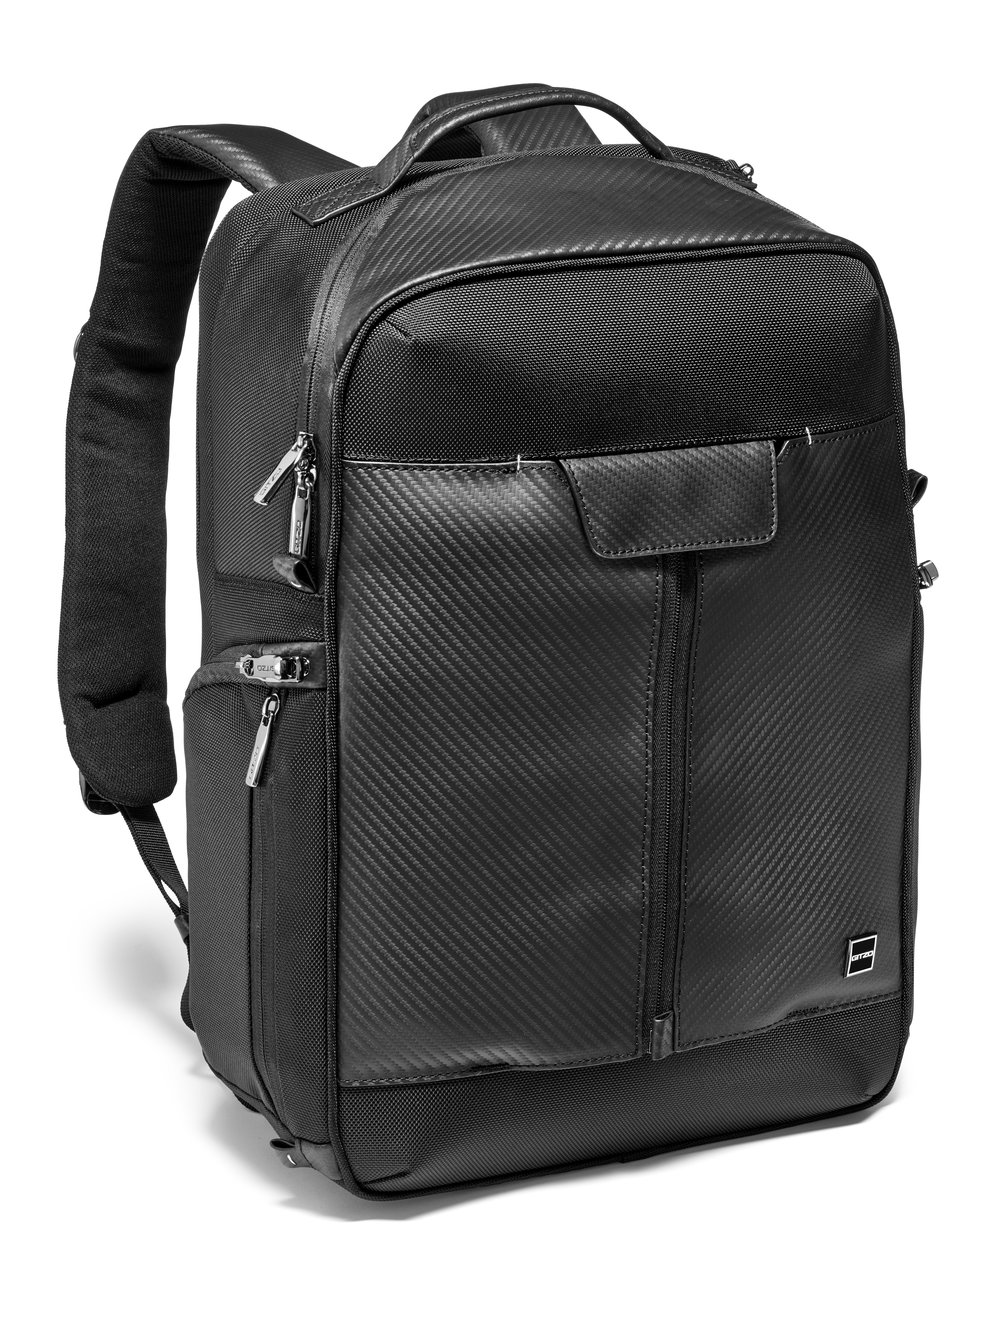 HR-GITZO_camera_bag_GCB100BP.jpg